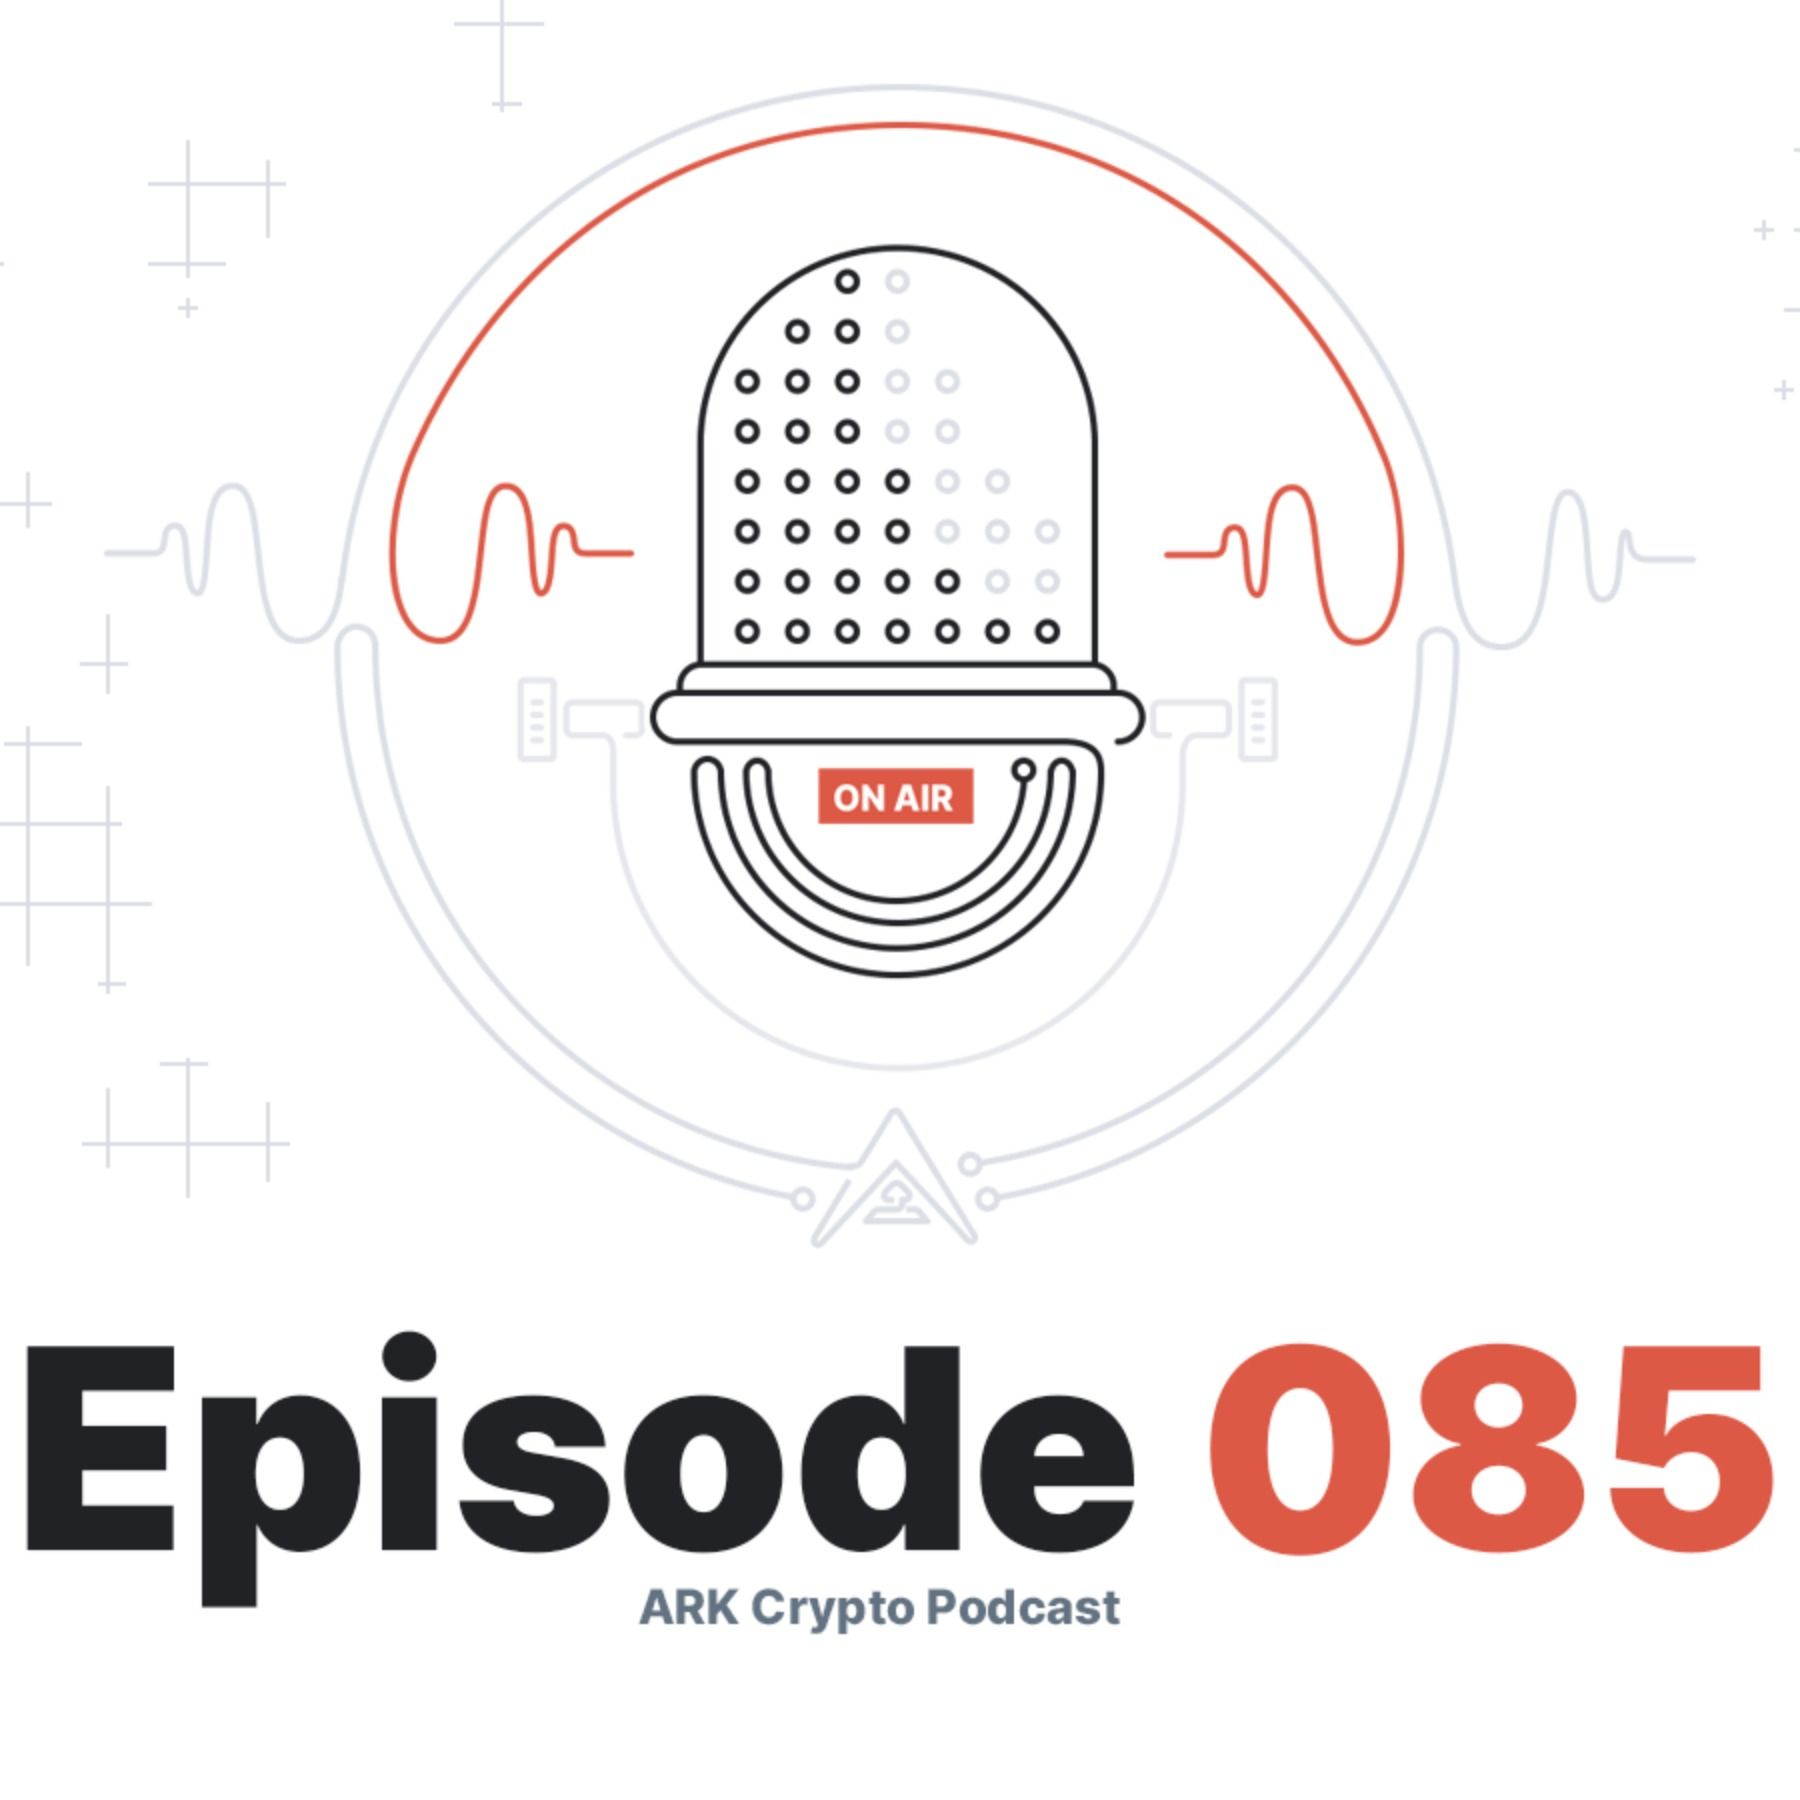 Reacting to ARK Descriptions on Crypto Directory Websites (Part 1) - ARK Crypto Podcast #085